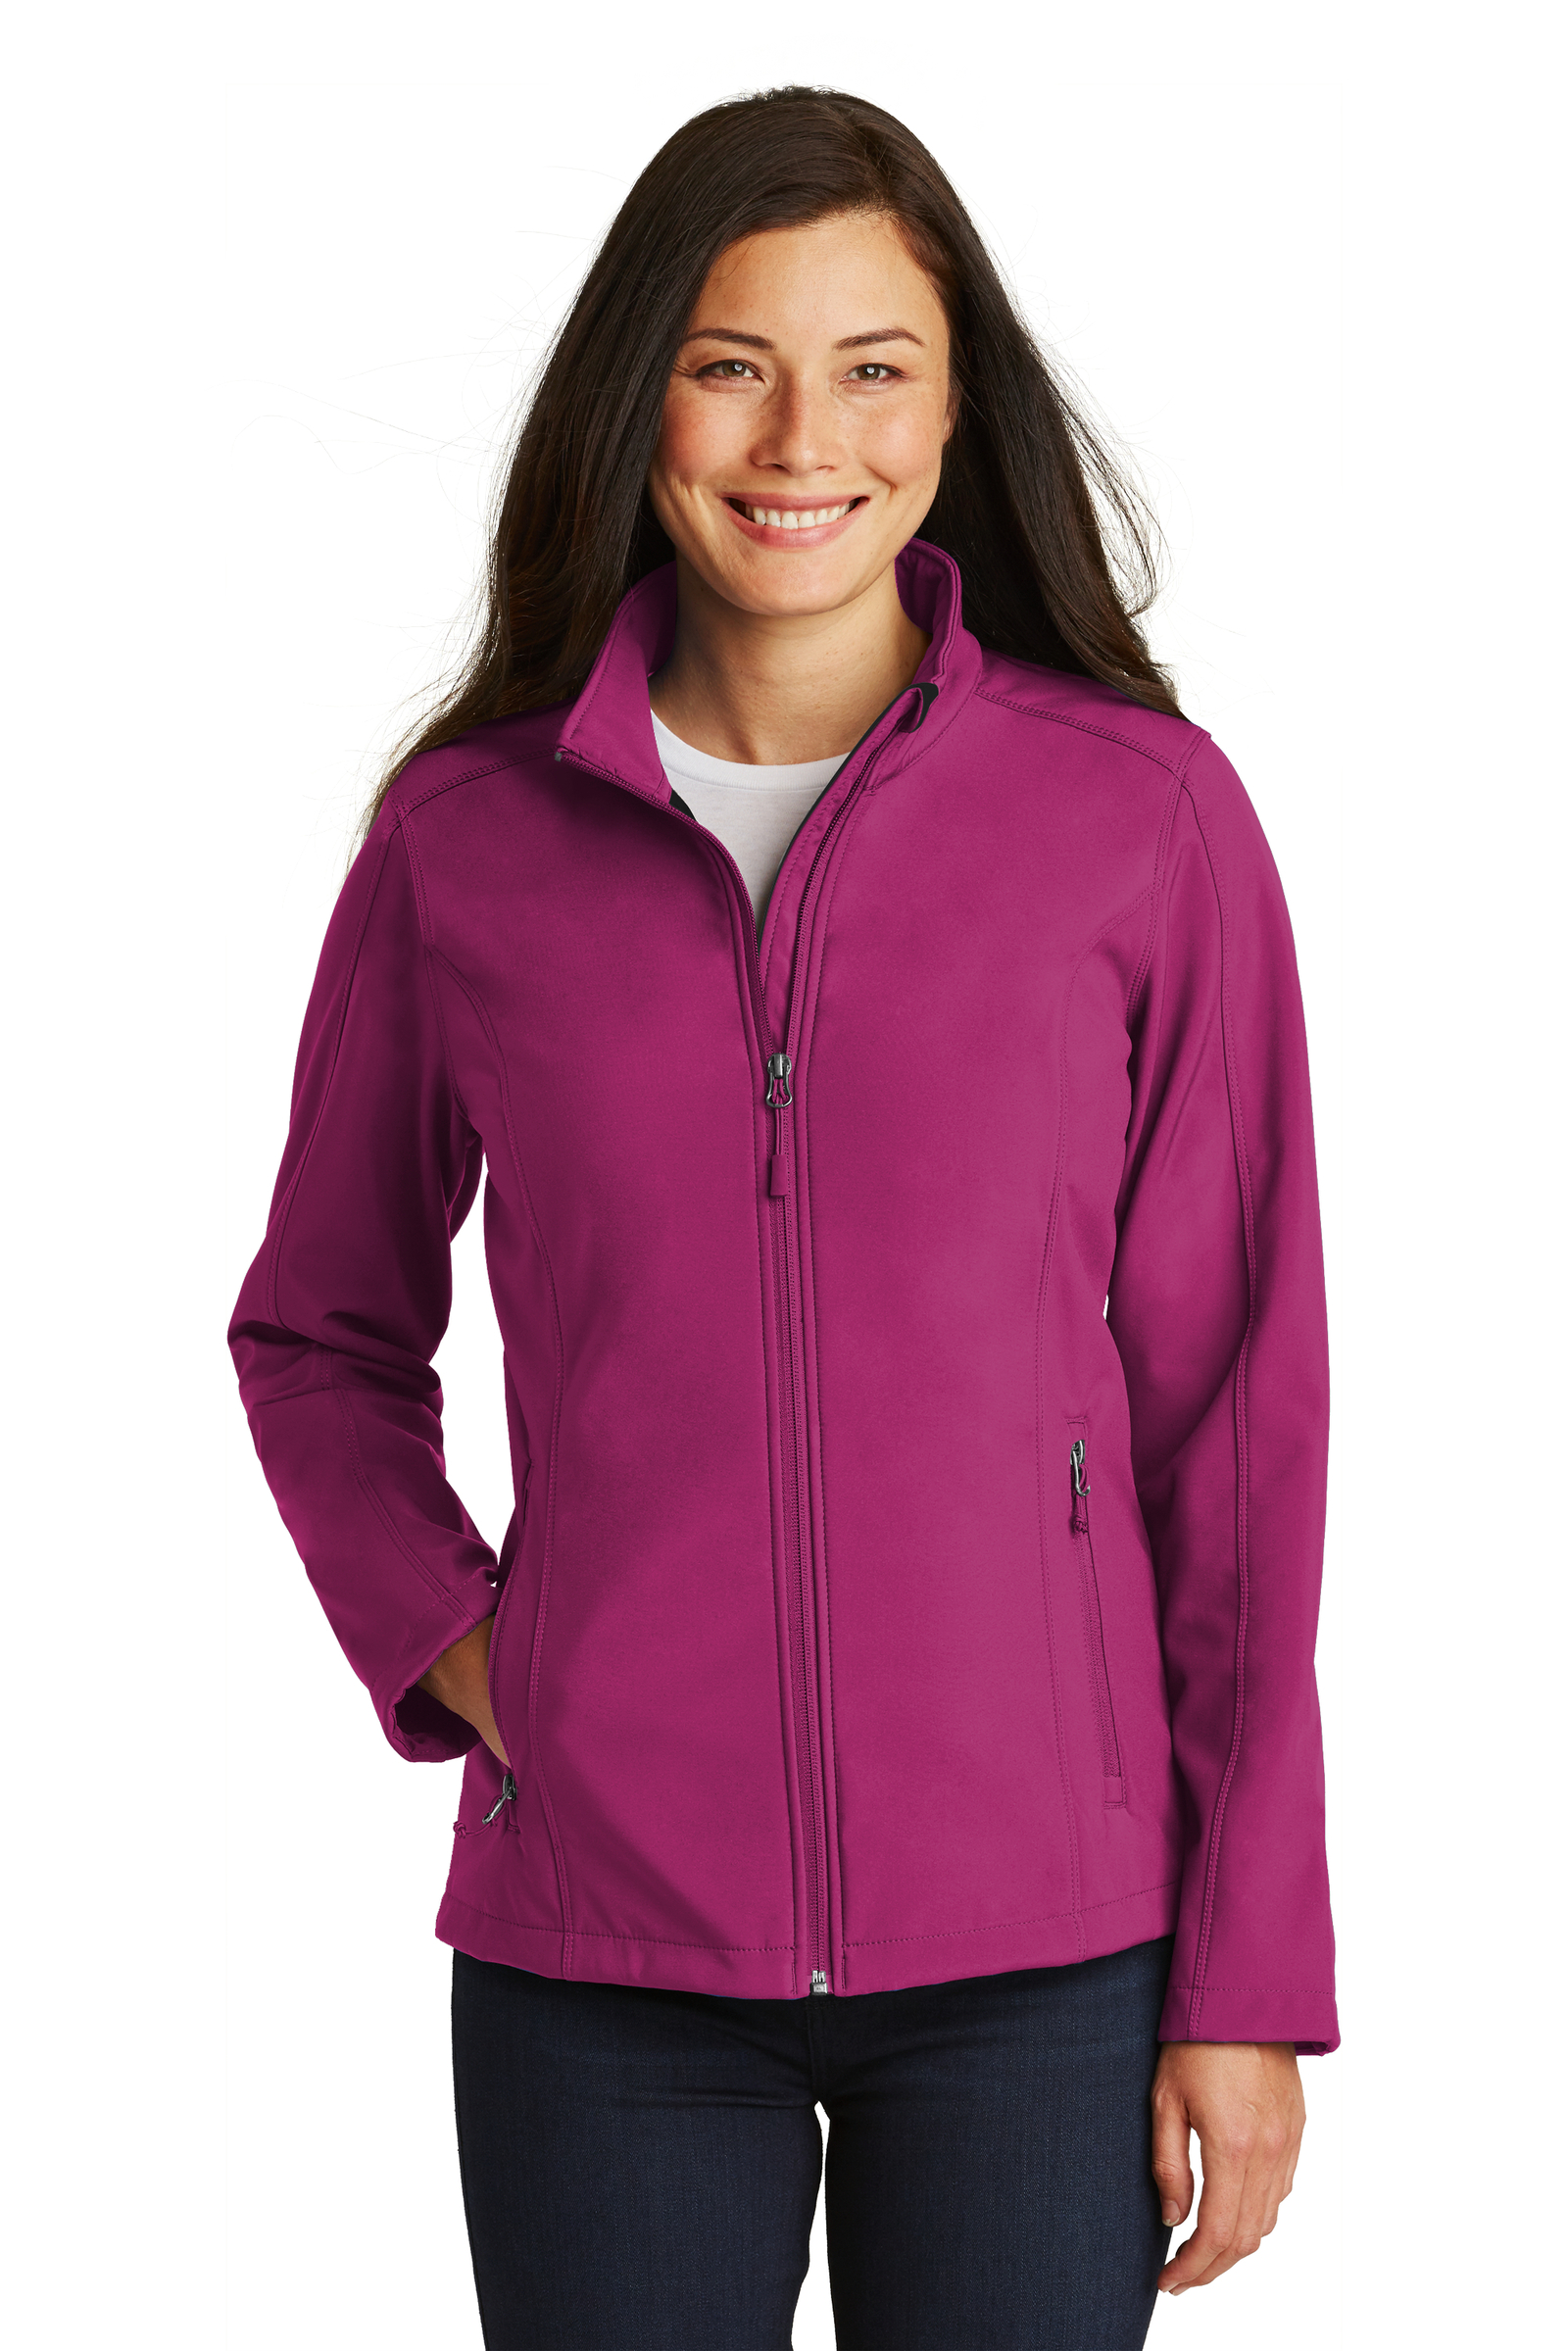 Port Authority  Embroidered Women's Core Soft Shell Jacket